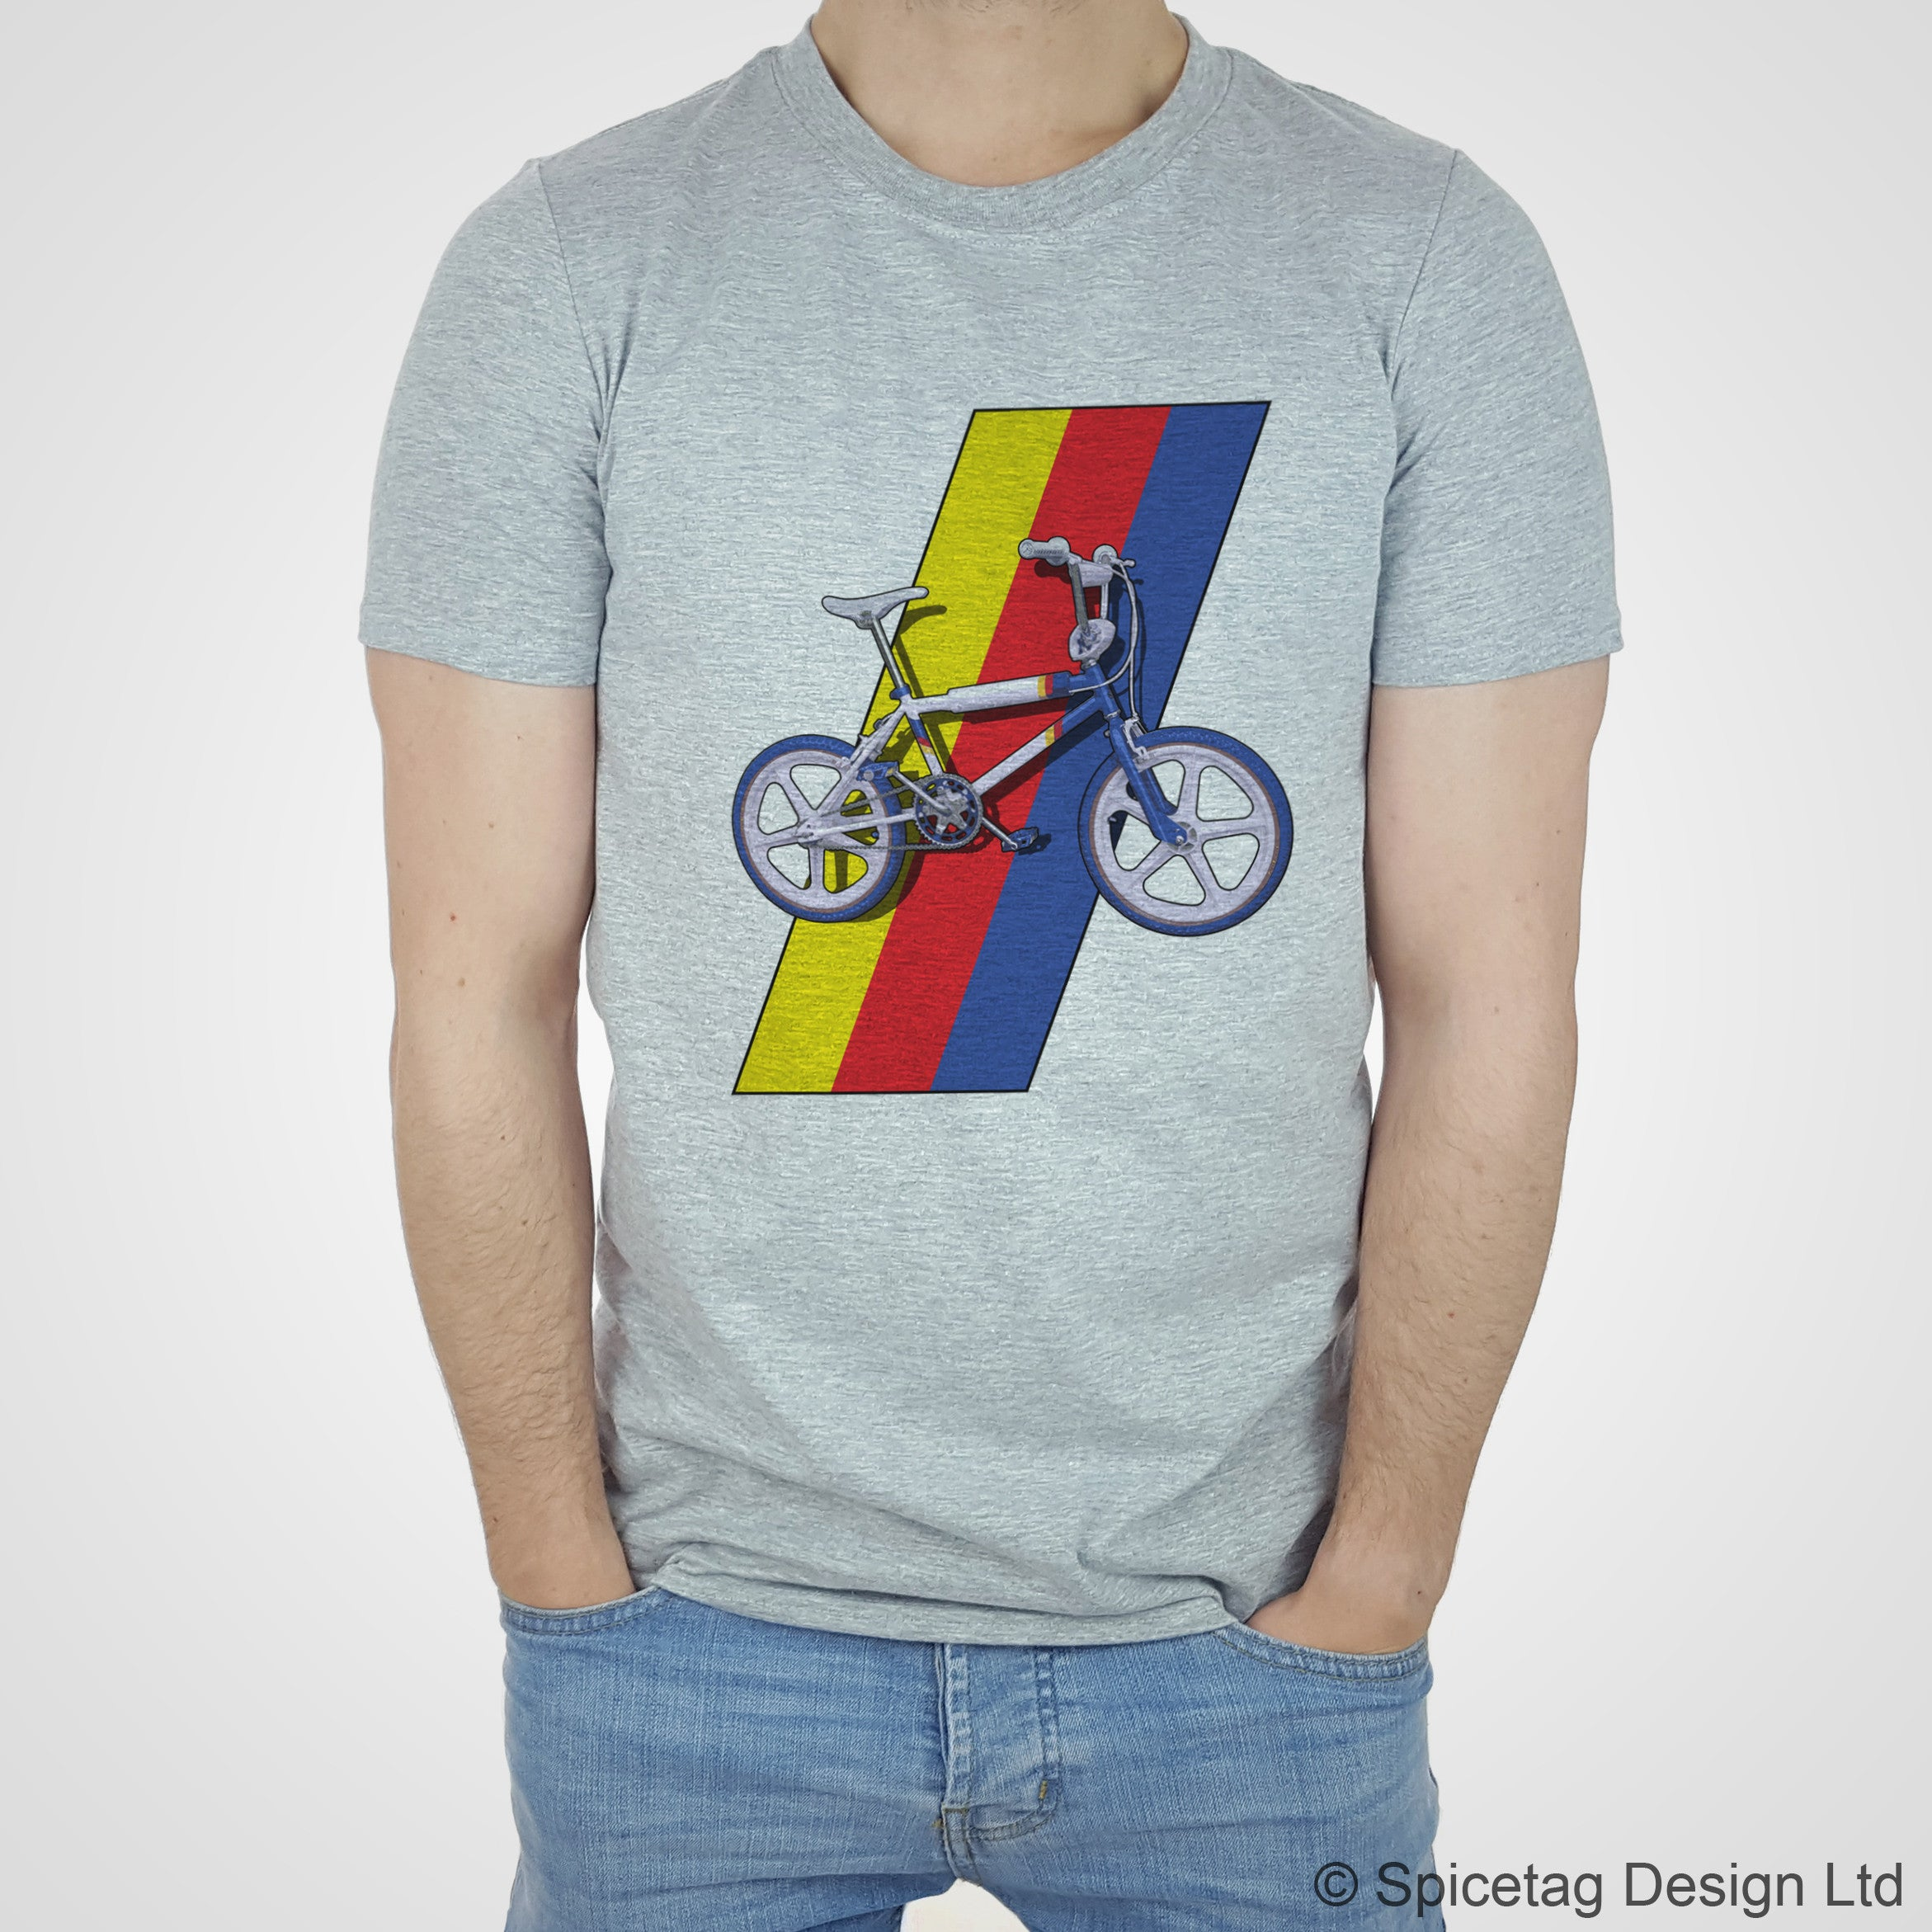 Spicetag BMX raleigh burner grifter 80s 1980s retro bike bicycle cycle cycling dirt cross T-shirt Tshirt T shirt Tee fashion style